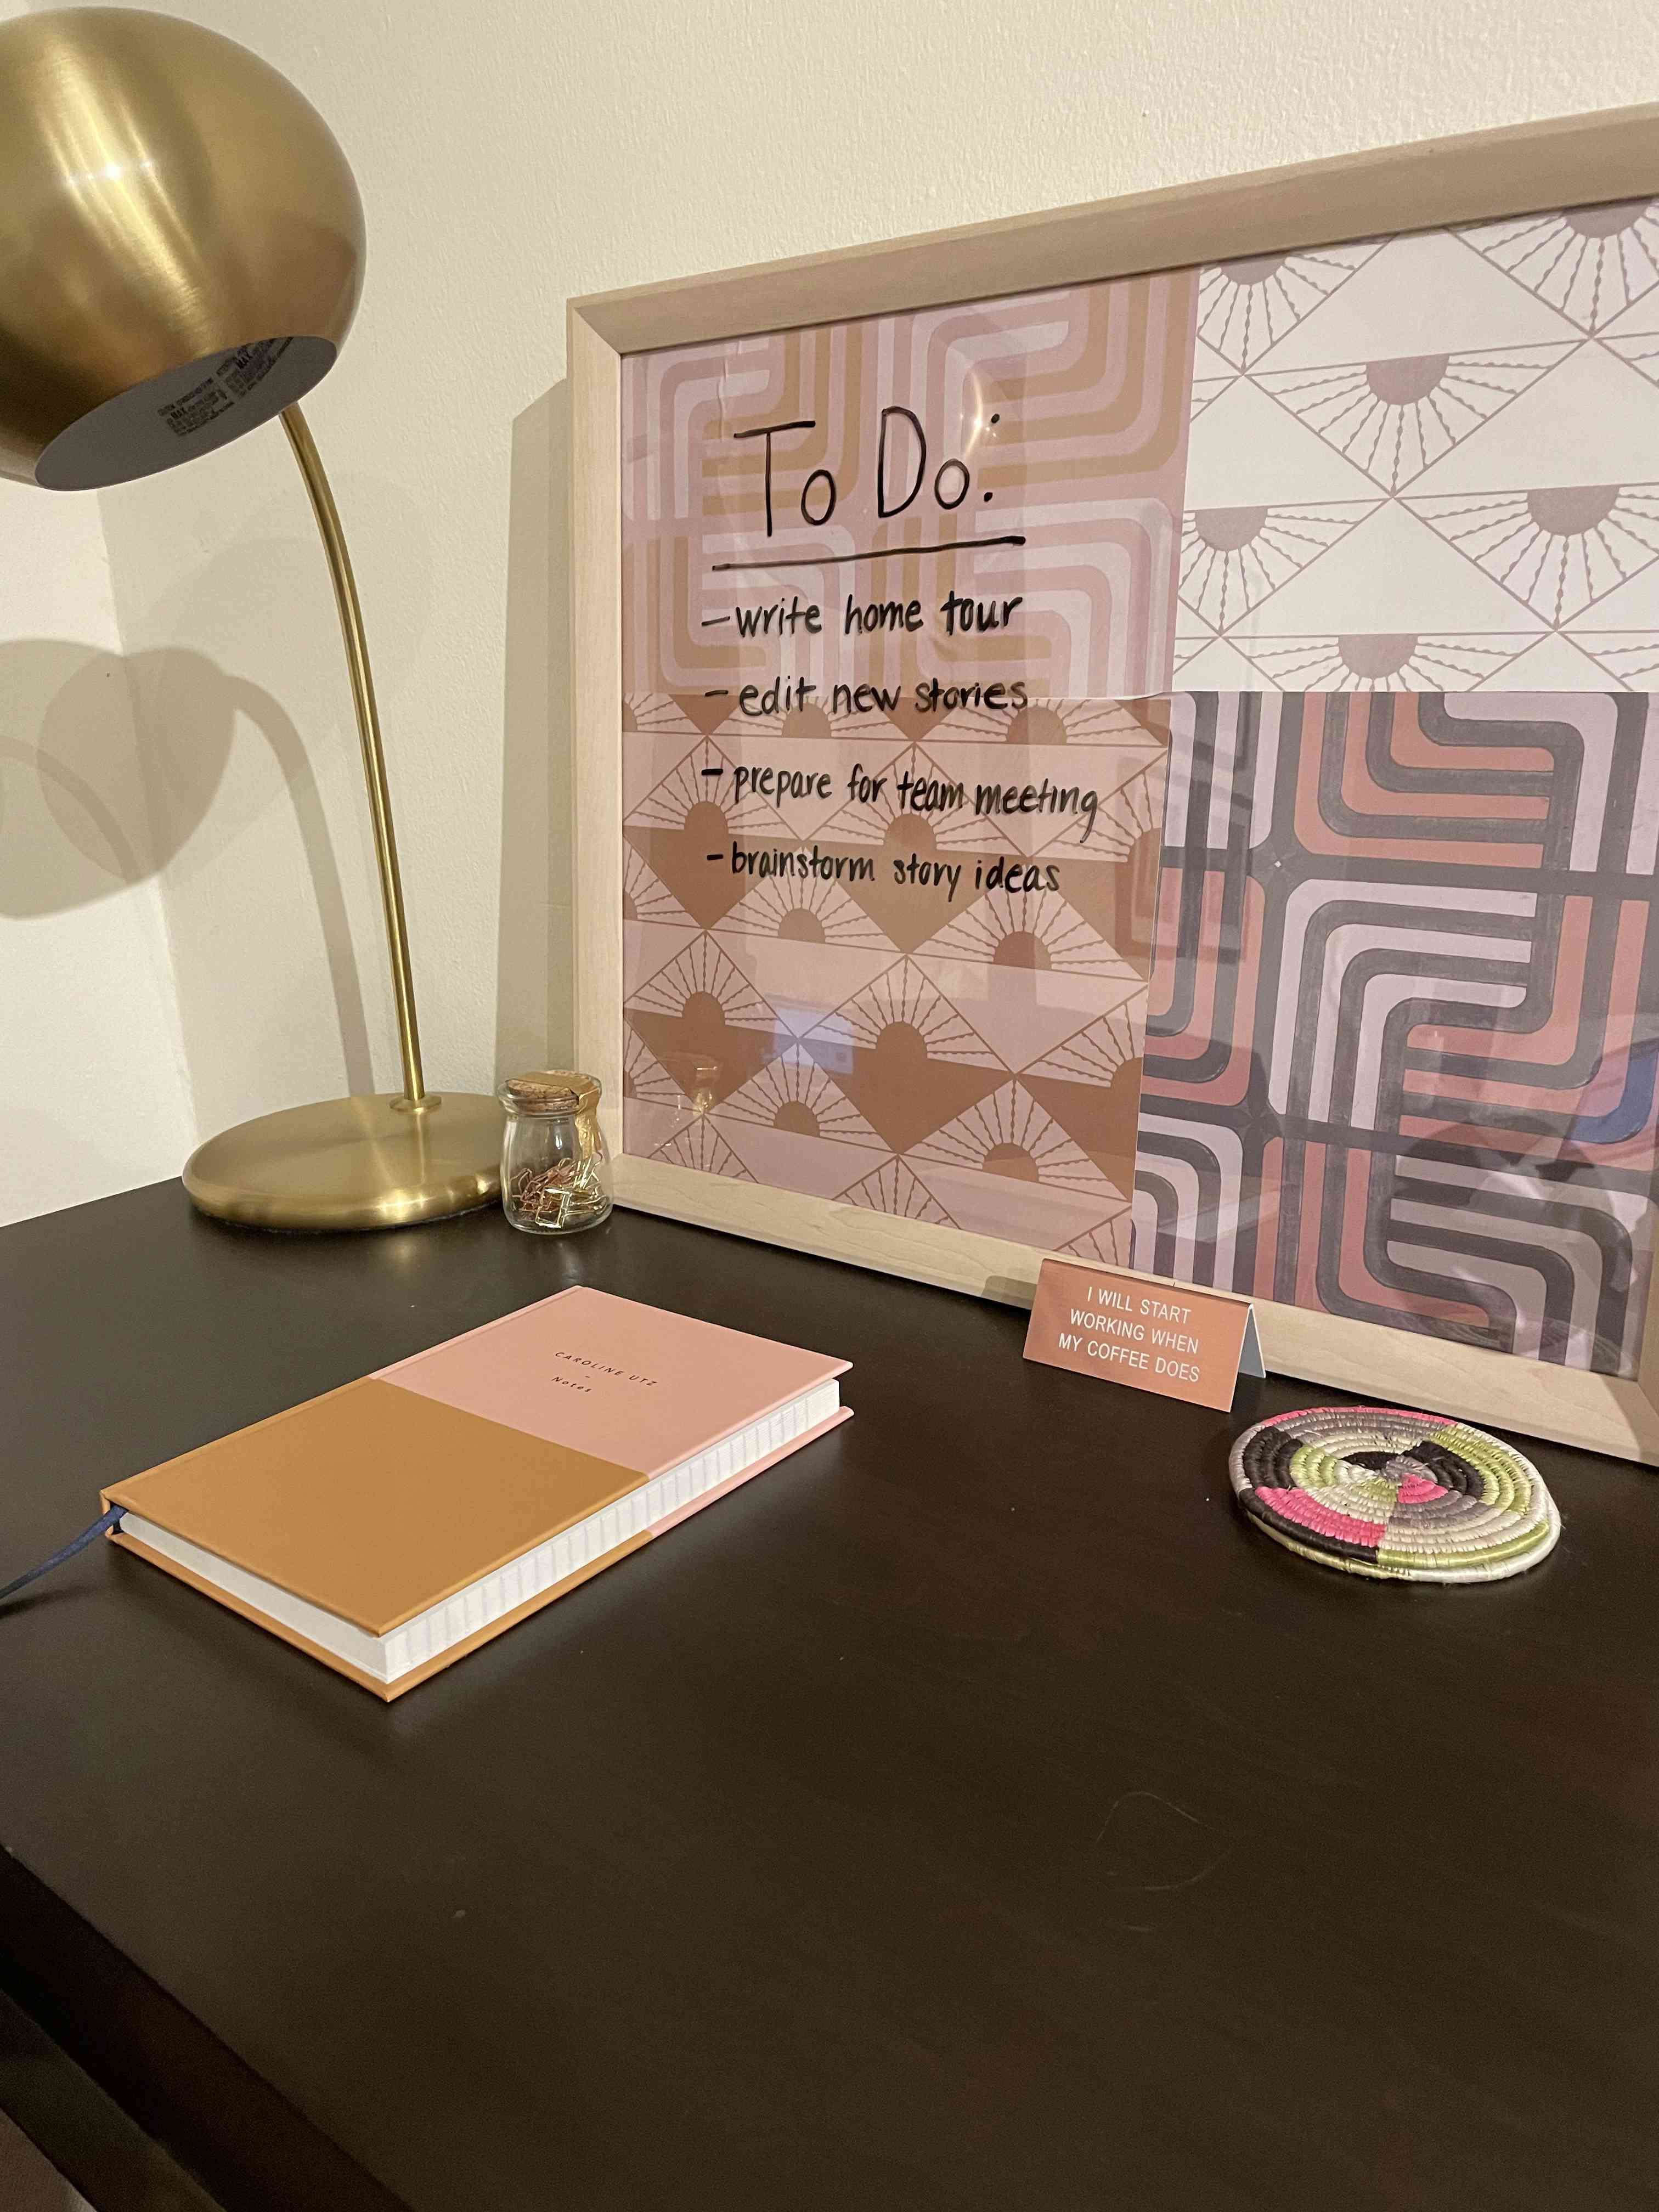 easy diy dry erase board finished with to do list written on it